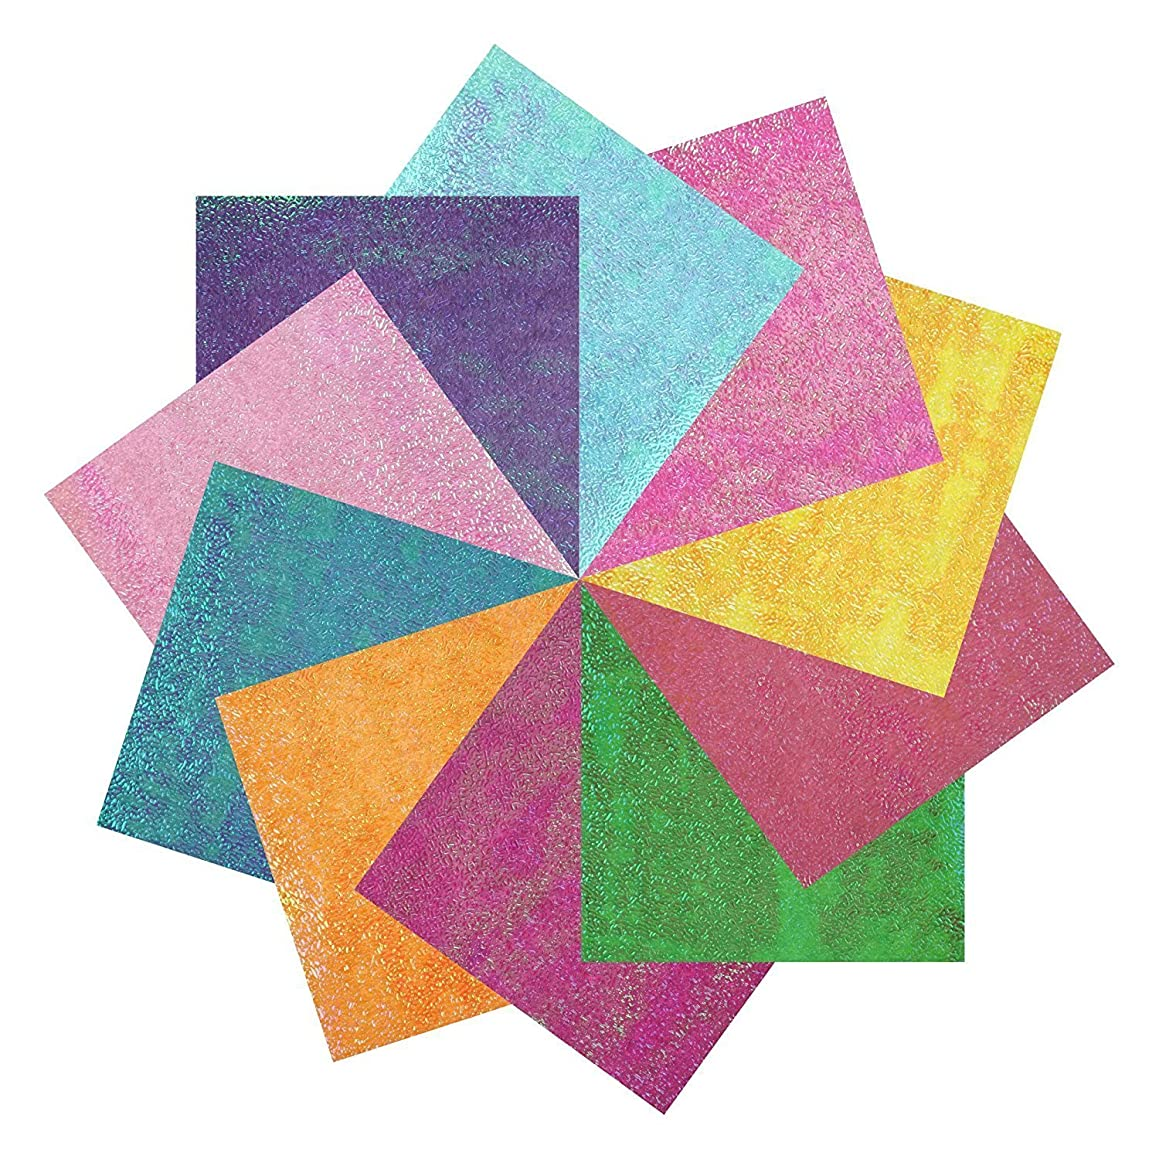 1Pack(50pcs) Easy Origami Iridescent Paper for Beginners,DIY Cool Simple Origami Crane for Paper Art (15 X 15)